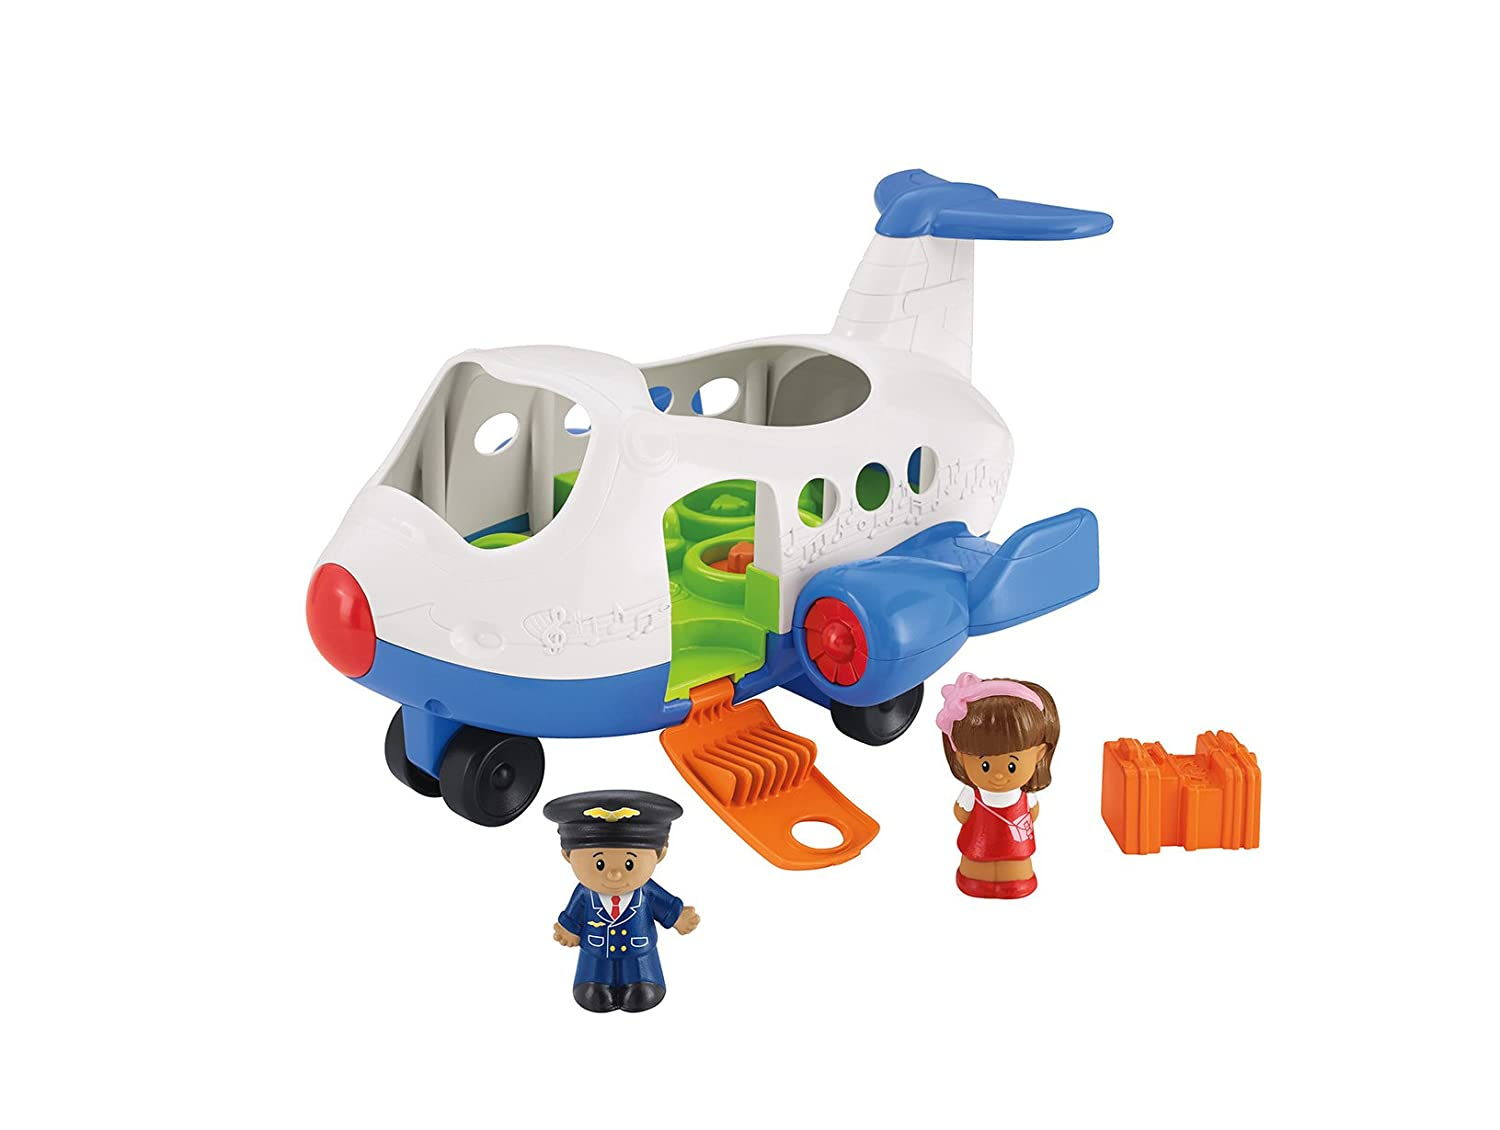 Little People Avión cantarín Fisher Price Mattel BJT